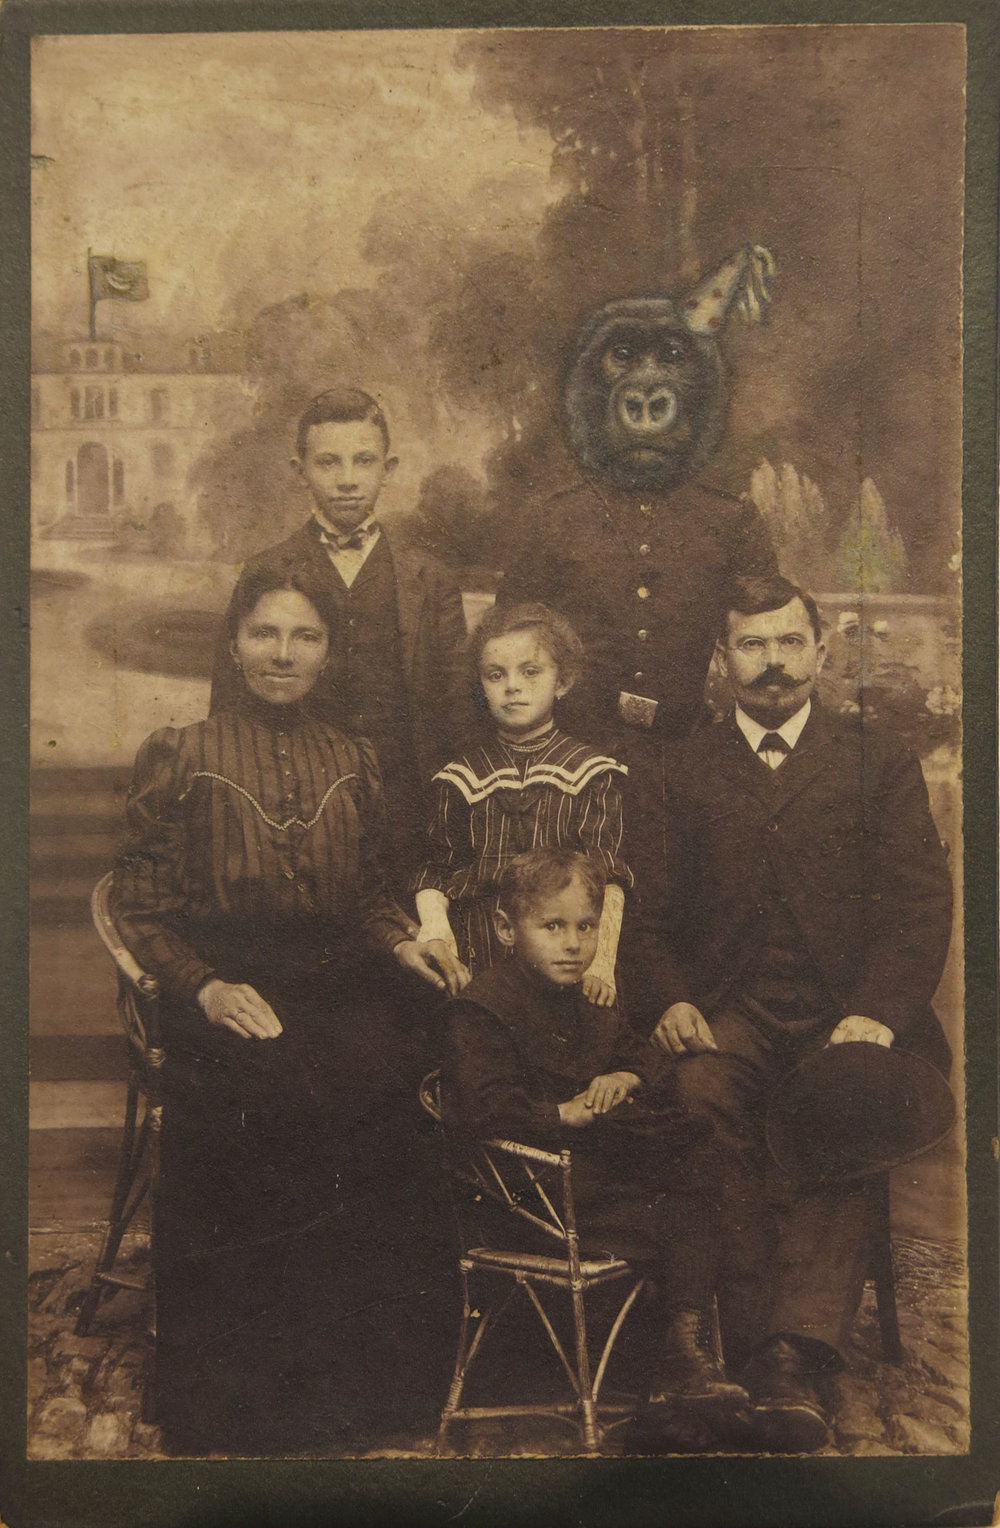 Jana Paleckova,  untitled 9gorilla with birthday hat),  2016, oil paint on vintage photograph, 6 1/2h x 4 1/4w in.